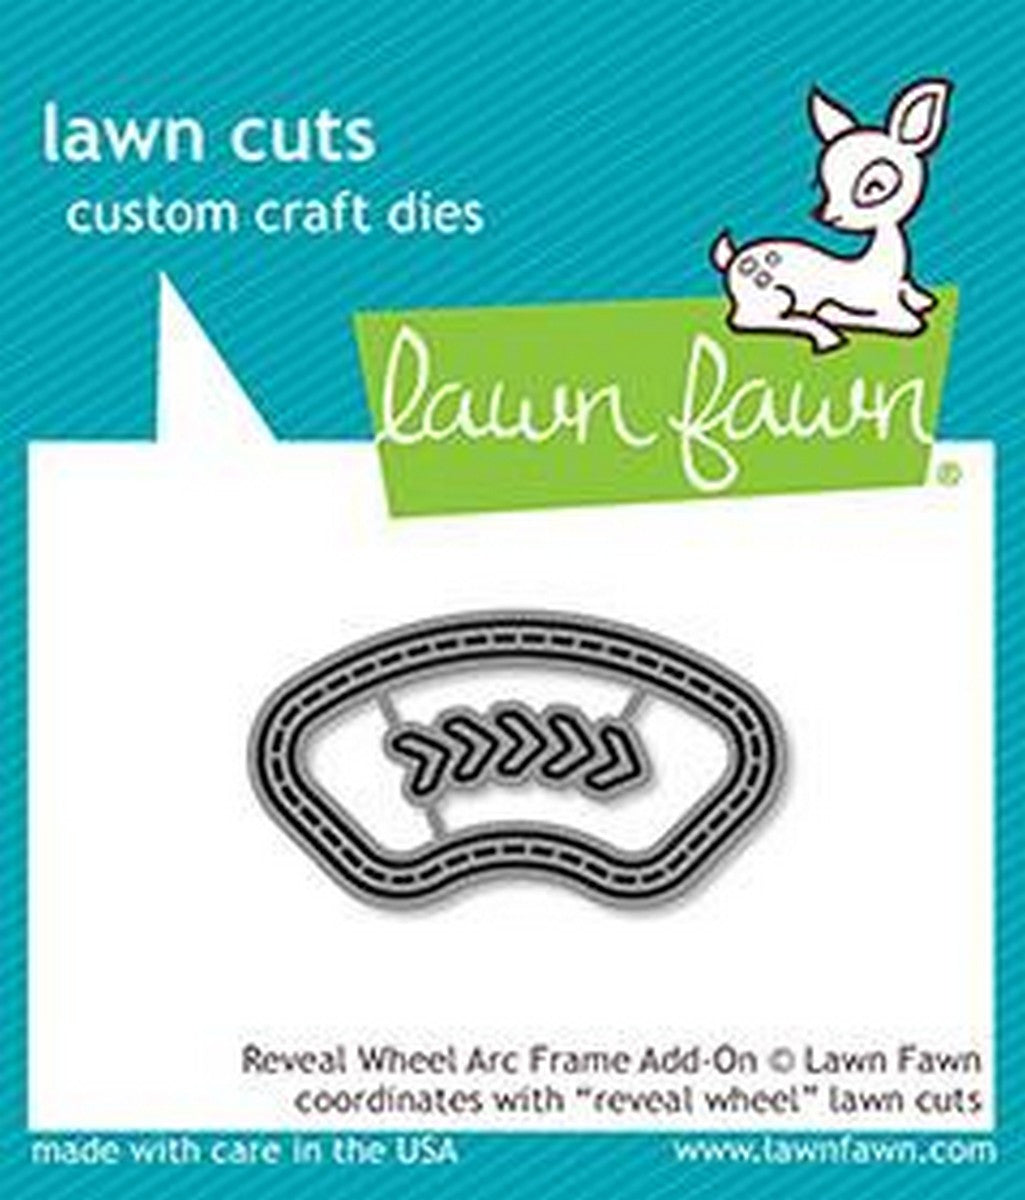 Lawn Fawn - Reveal Wheel Arc Frame Add-On Dies